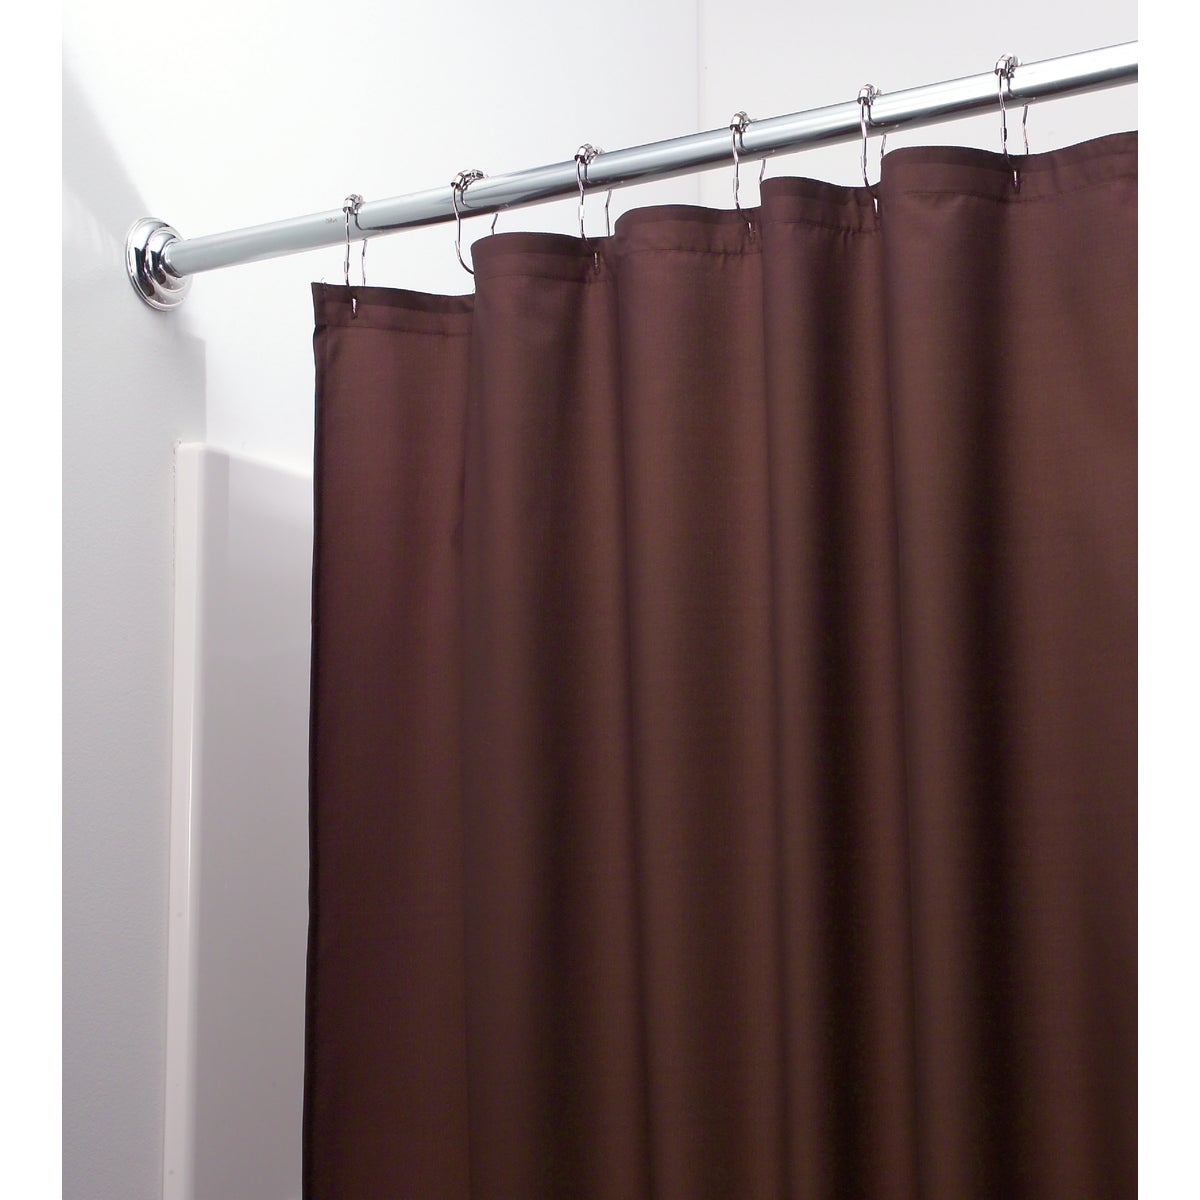 CHOC POLY SHOWER CURTAIN - 14658 by Interdesign Inc